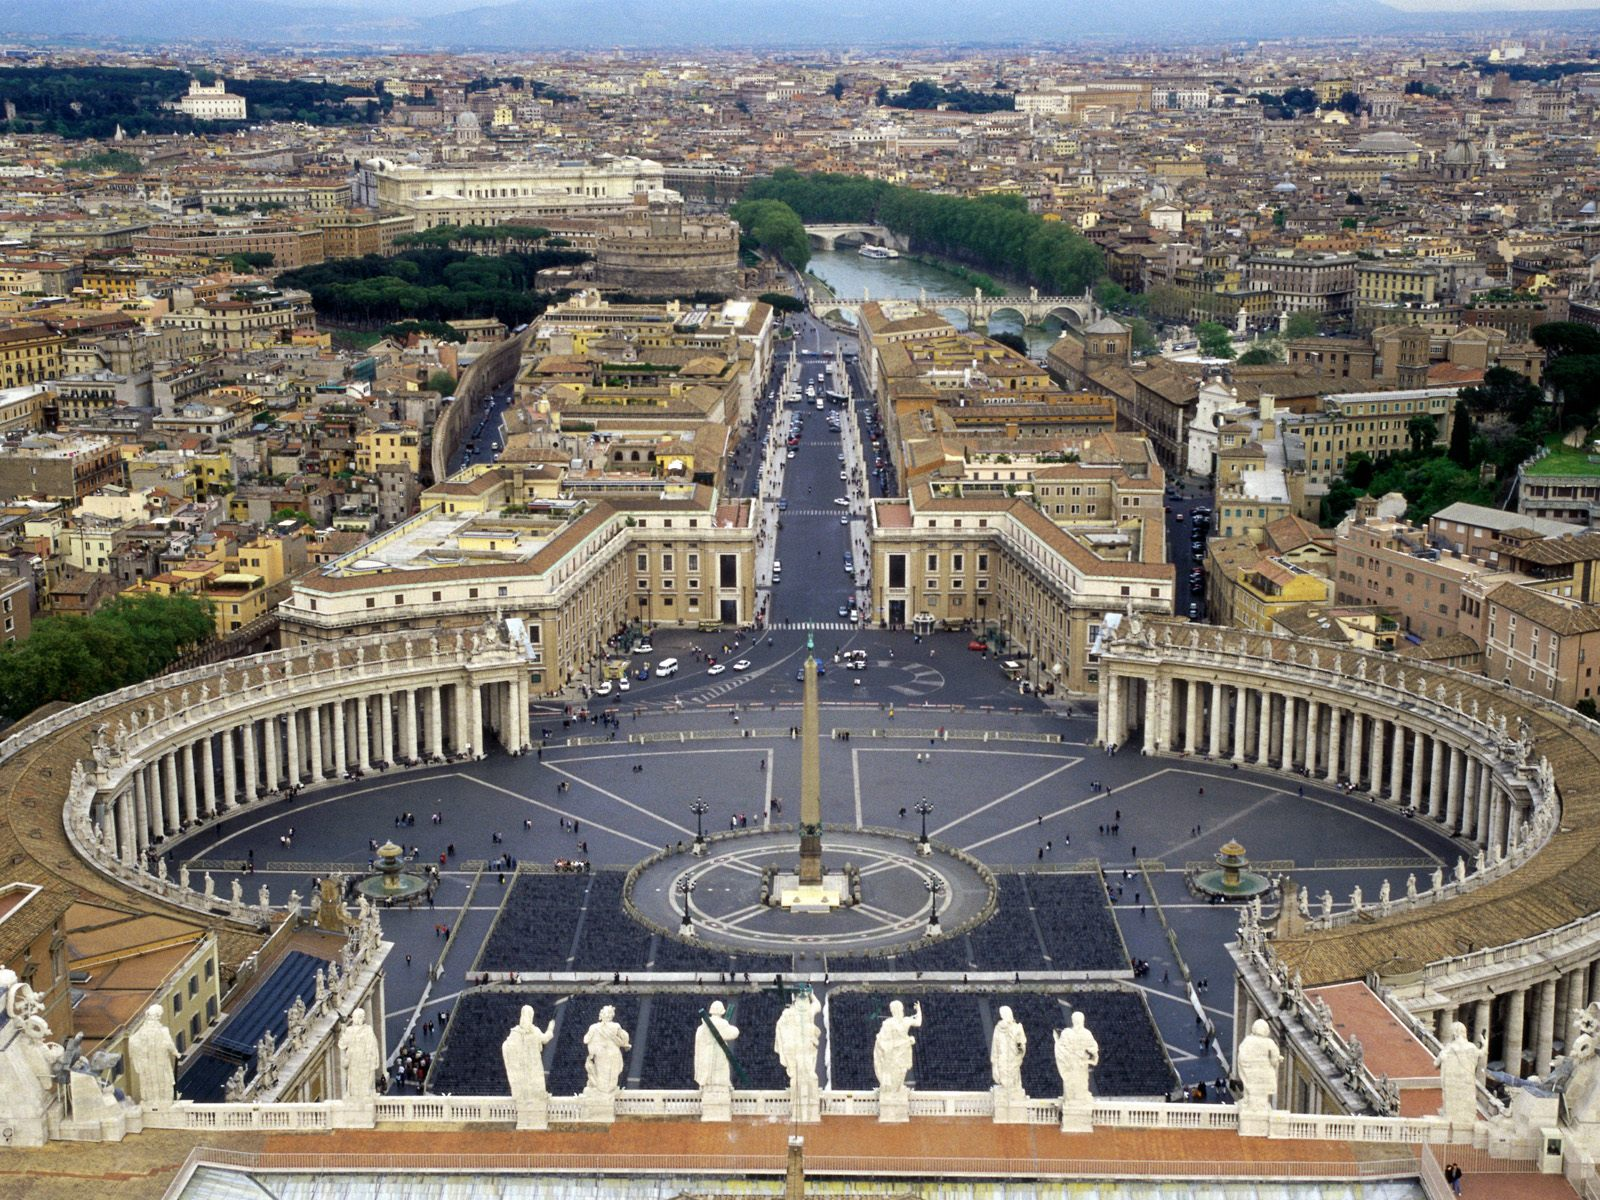 Vatican City. City in Europe